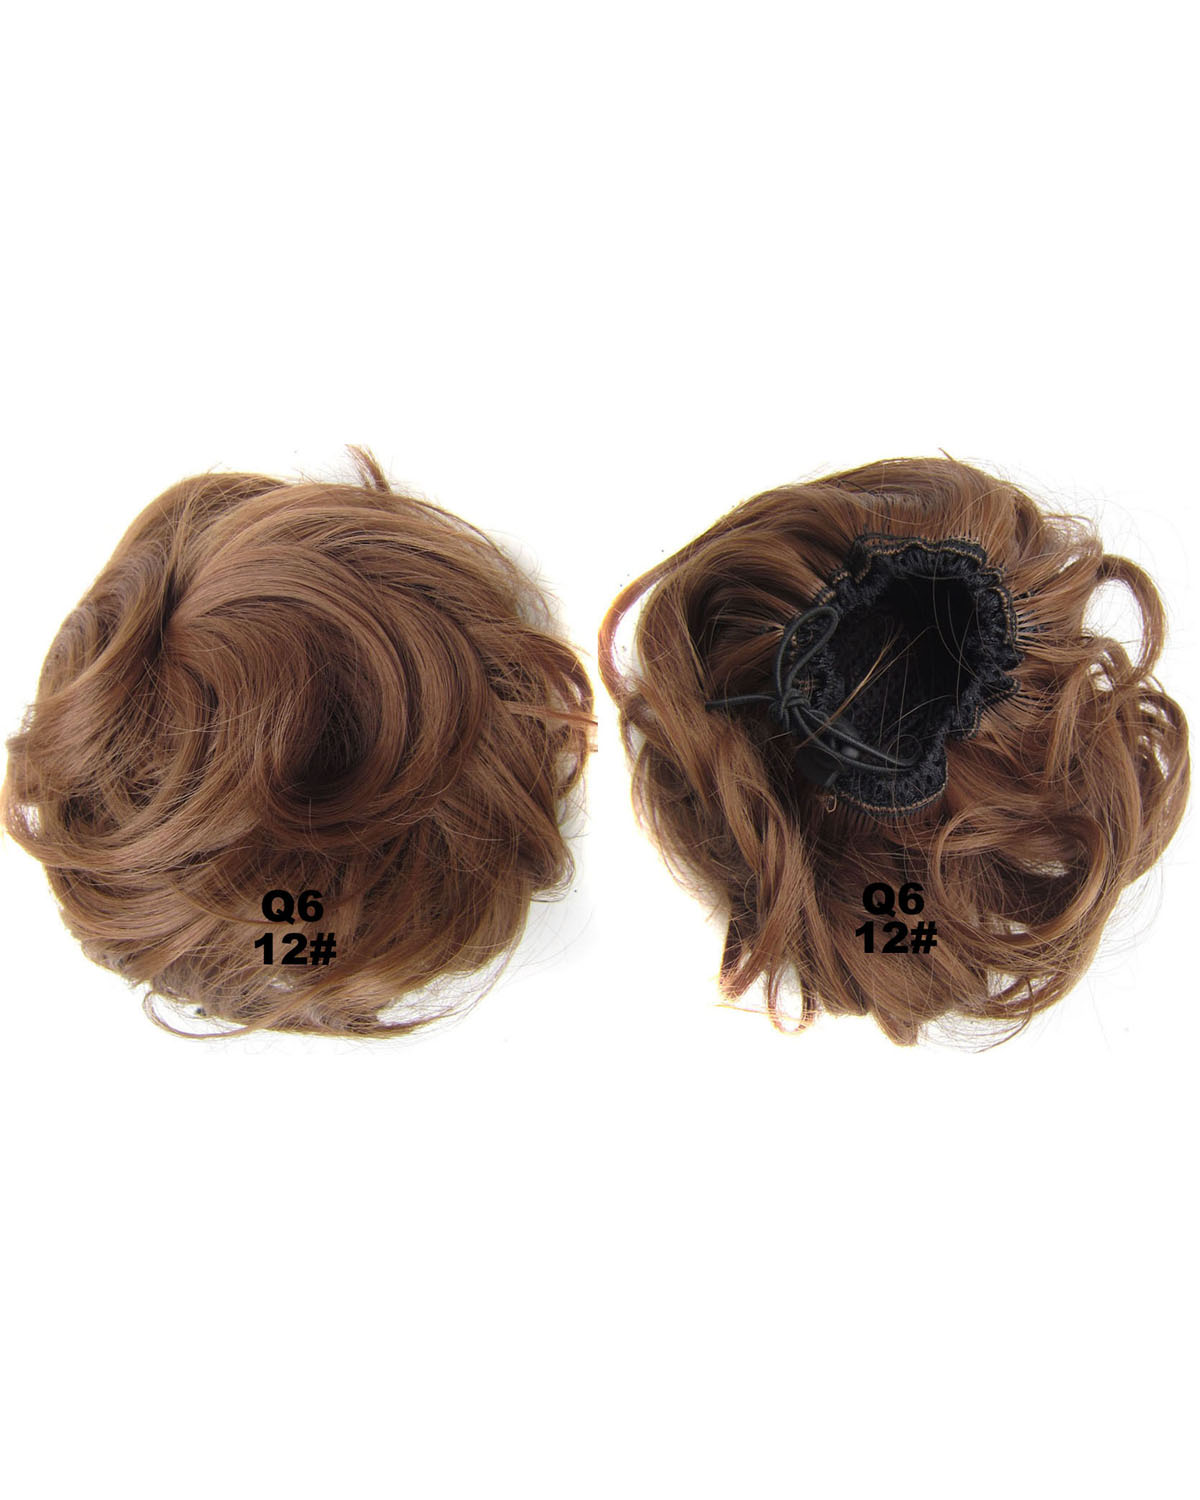 Ladies  Clean and  Popular  Curly and Short Hair Buns Drawstring Synthetic Hair Extension Bride Scrunchies  12#